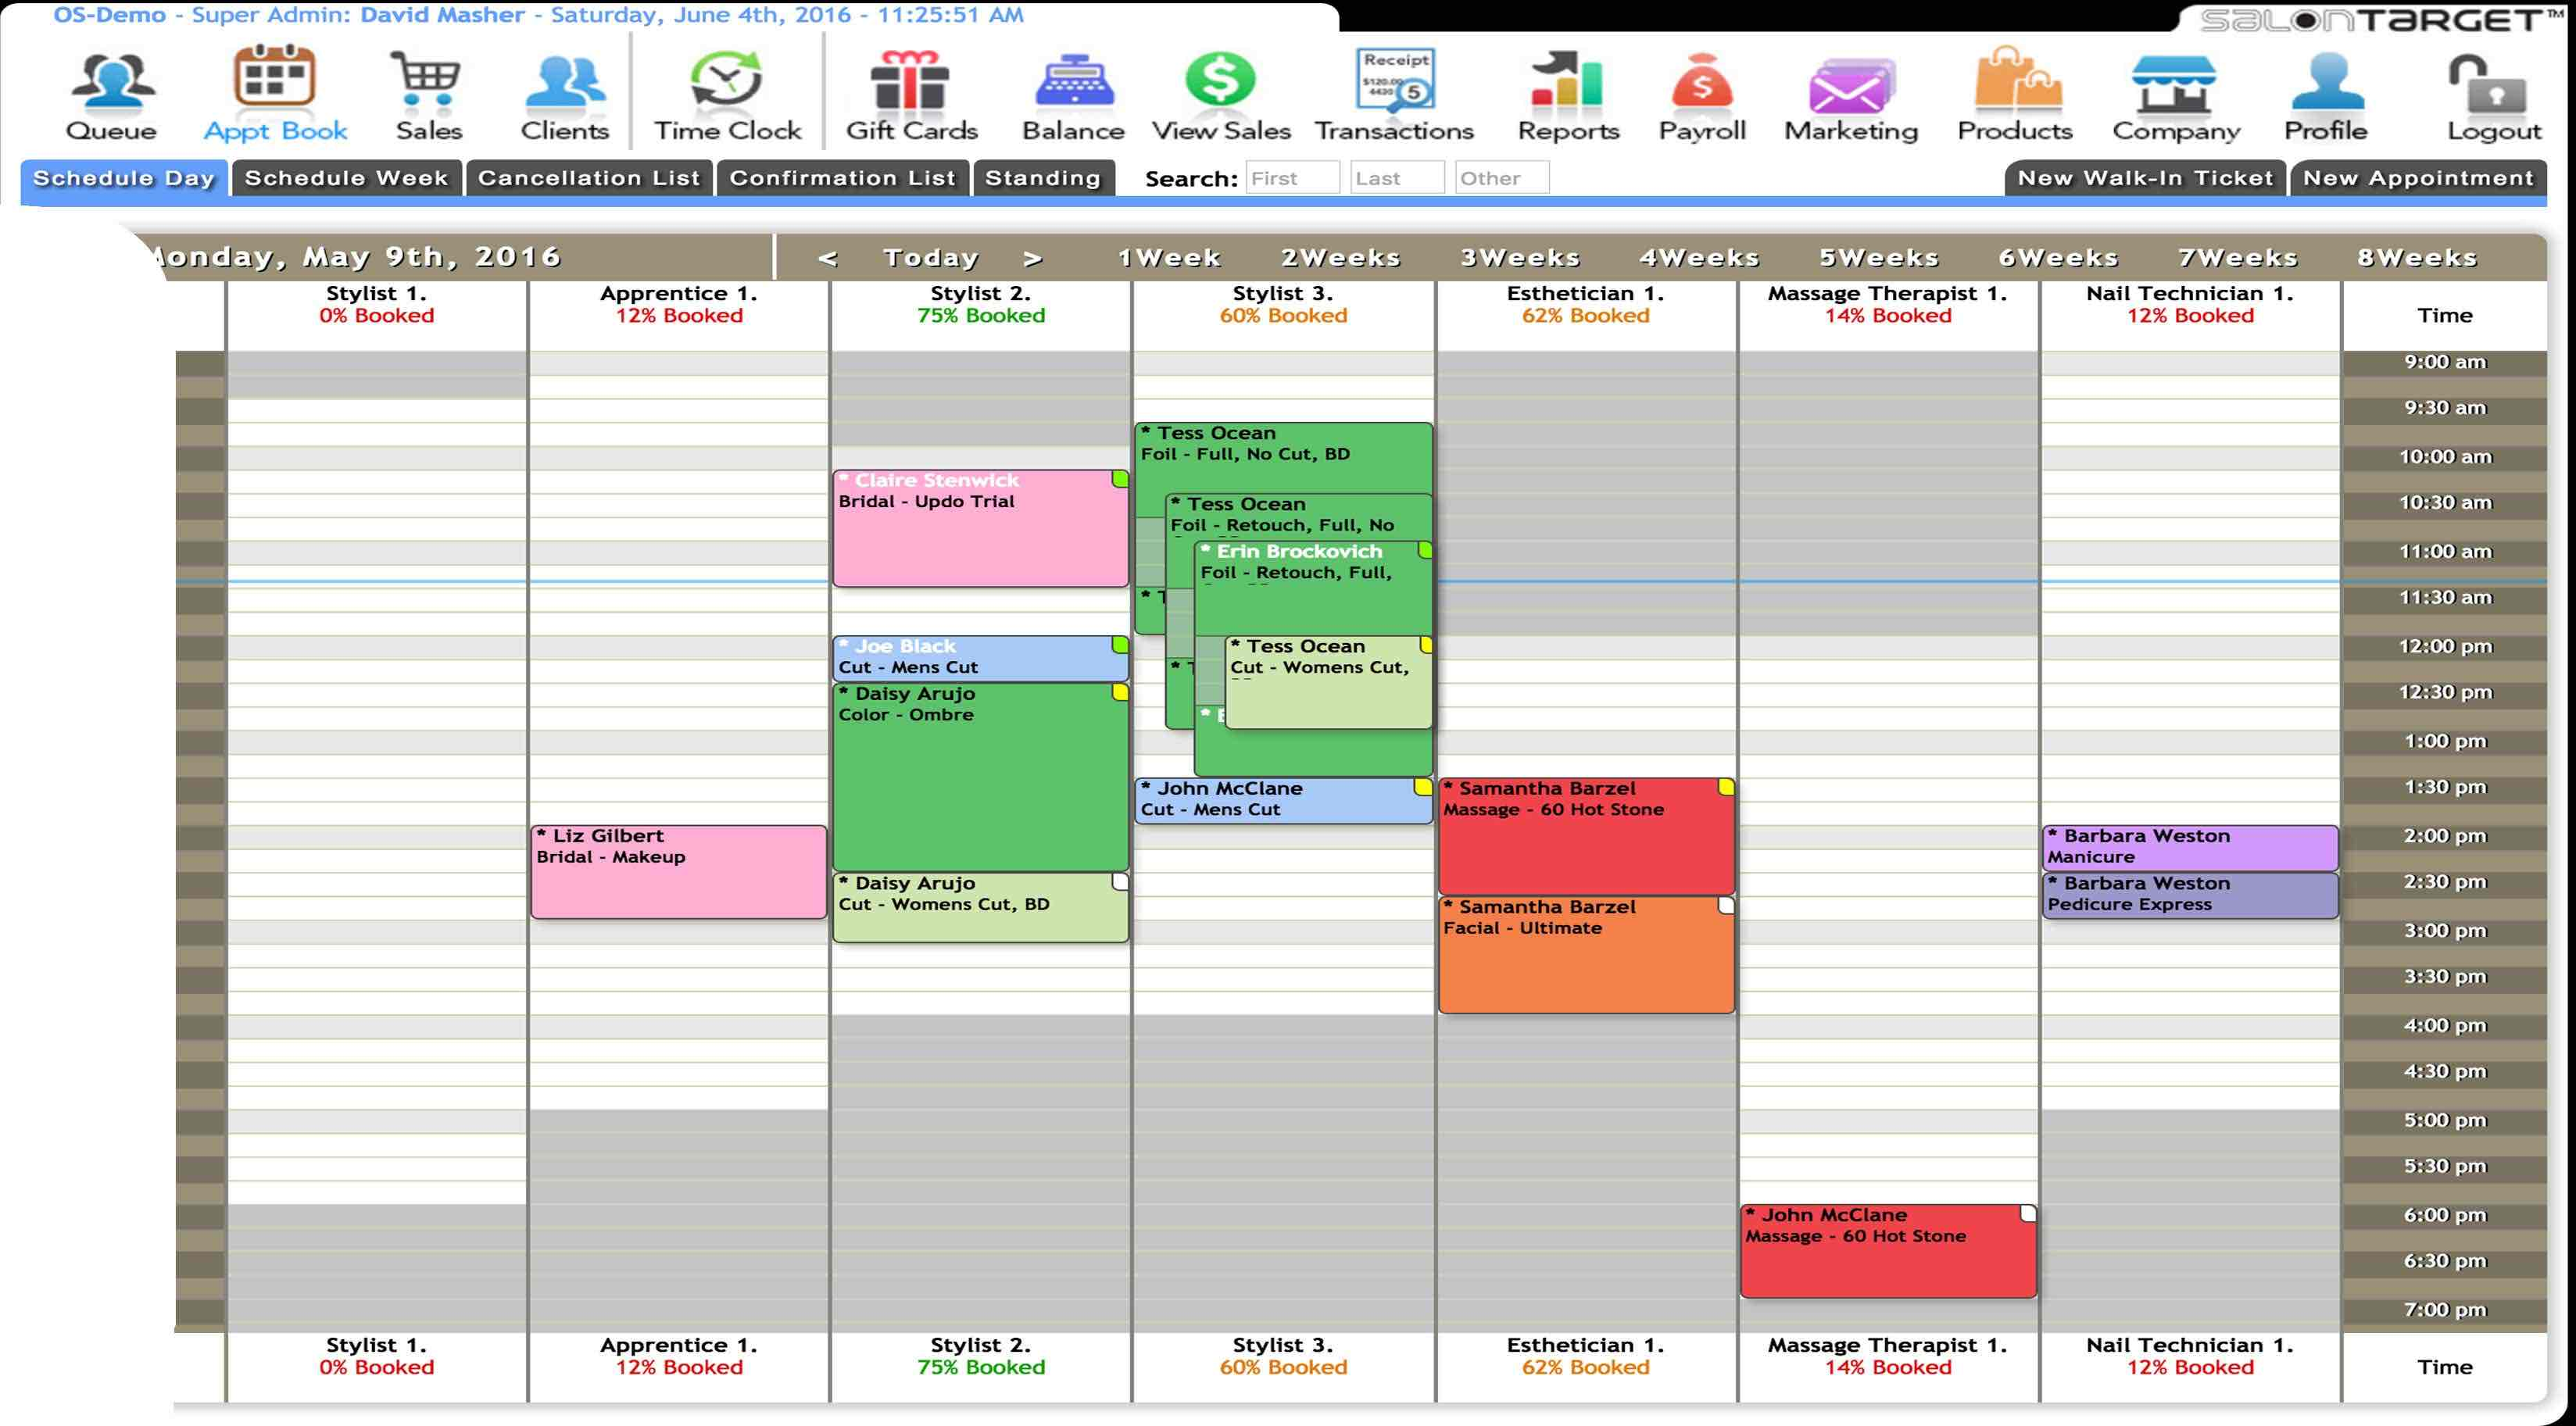 An image displaying the Layered appointments in the SalonTarget Admin